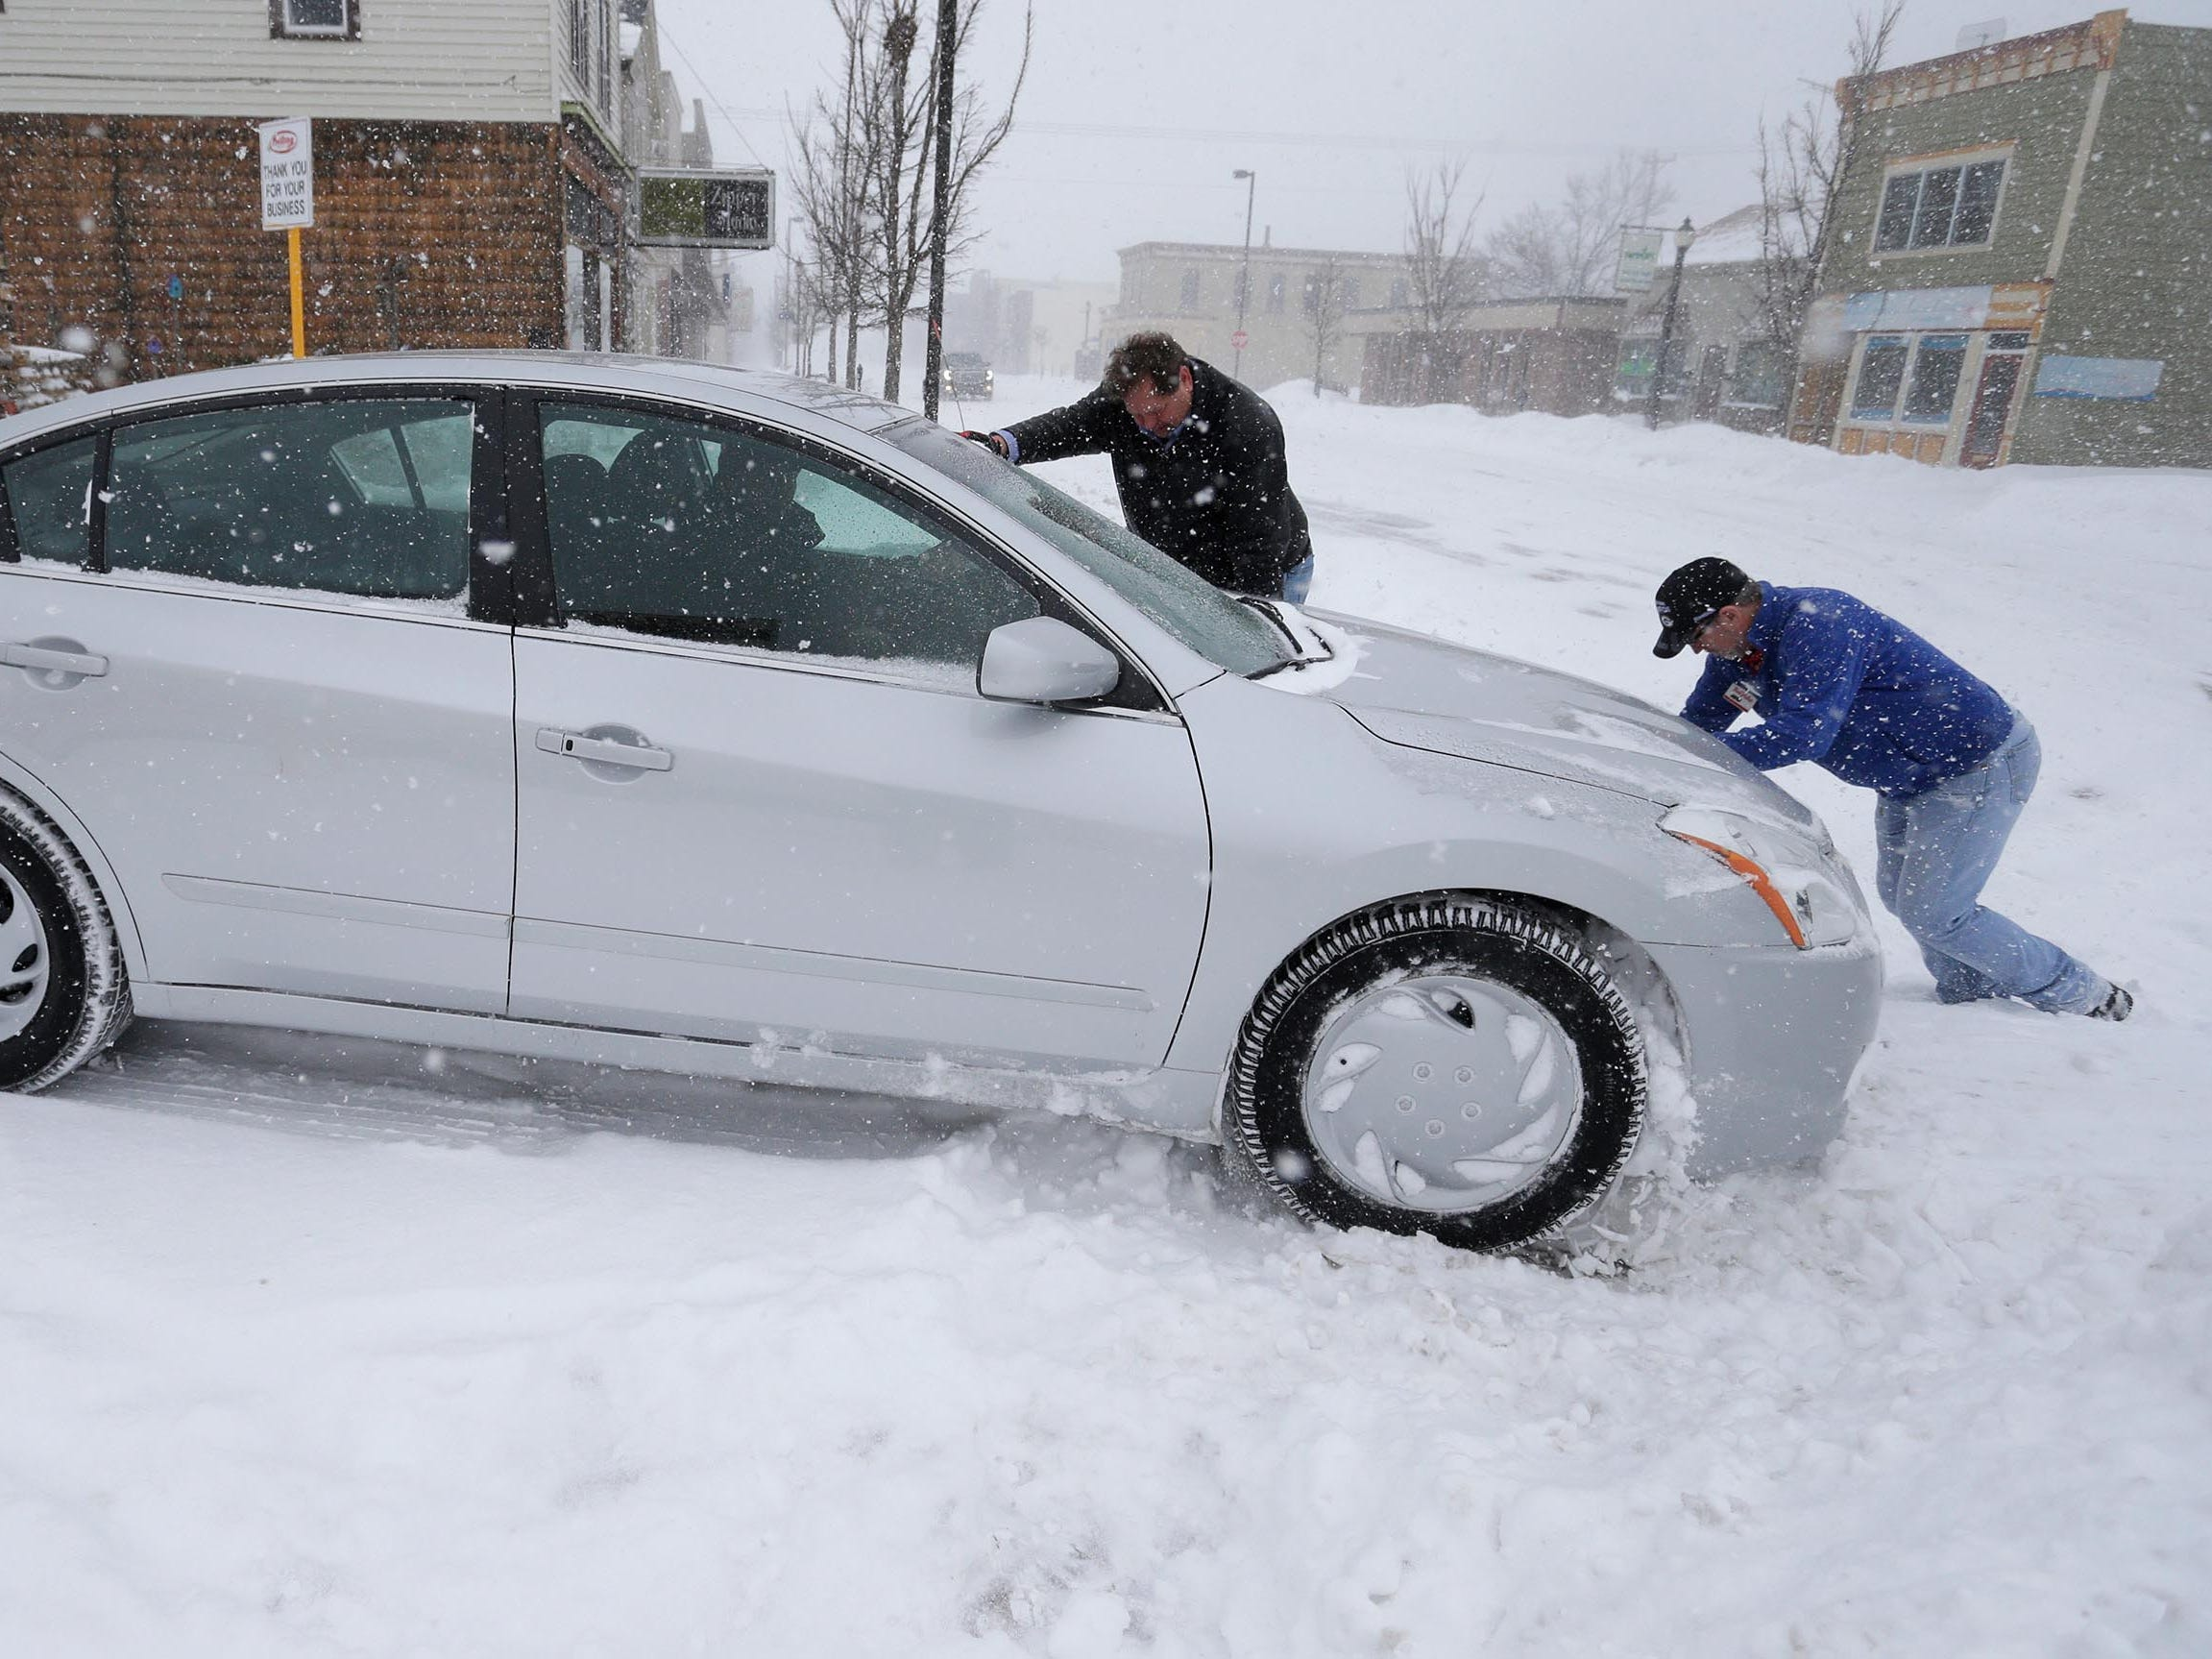 Trilling True Value's Greg Parmly, left, and Chris Schramm, help push a customer's car out of a snow bank, Monday, Jan. 28, 2019, in Sheboygan, Wis. Parmly said that his firm sold 15 snowblowers last week in anticipation of the storm.